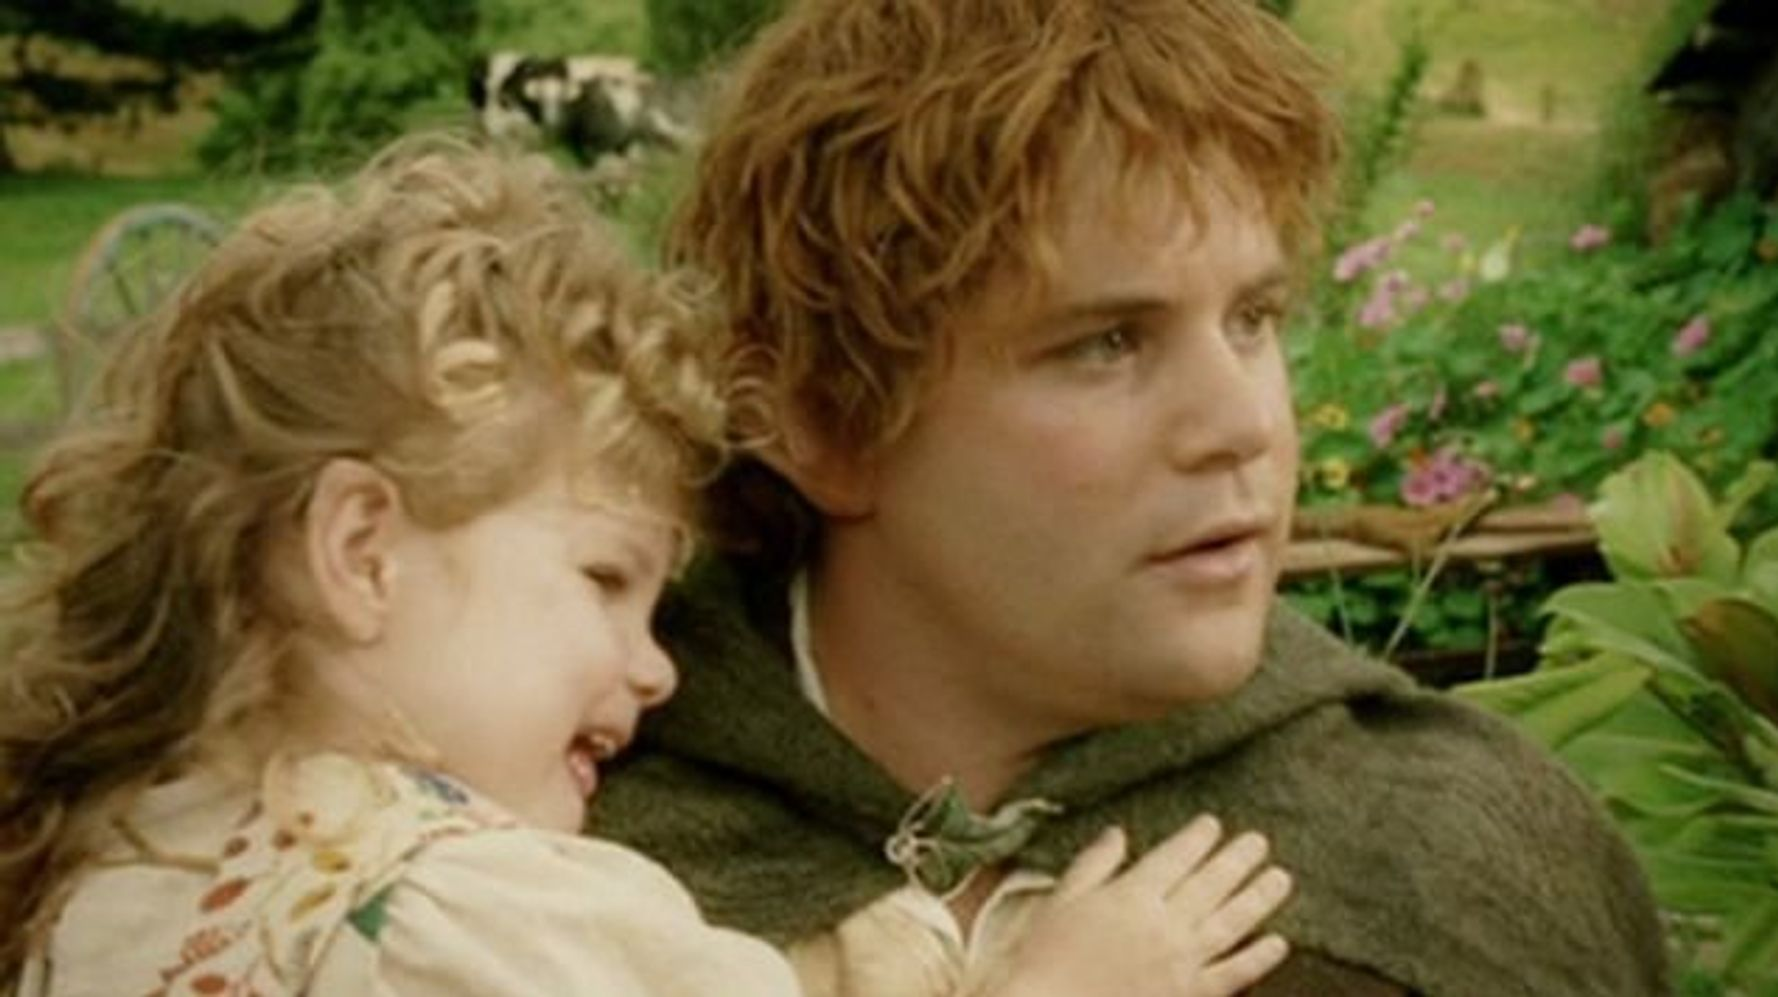 In Lord Of The Rings' last film, the little girl who played Sam's daughter was actually his daughter IRL.